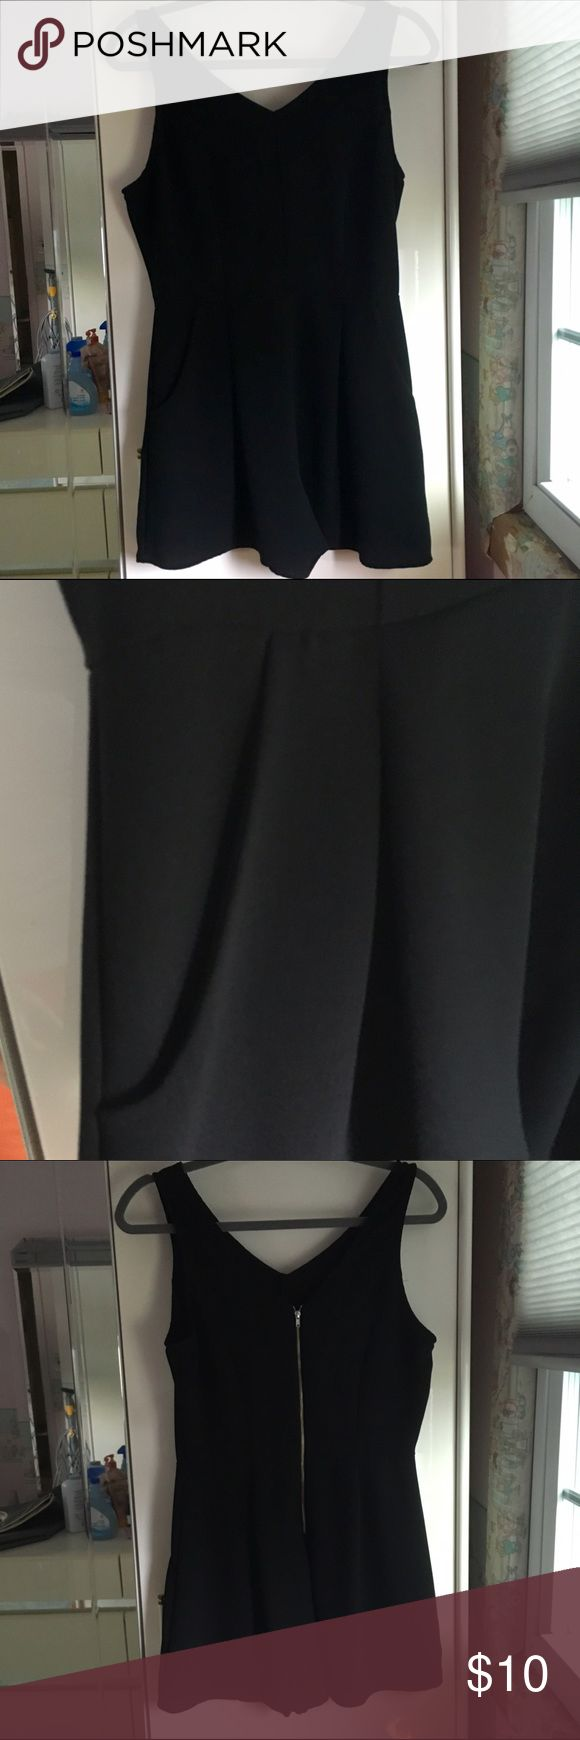 🆕Black zip up romper from TJ Maxx Bought this black romper from TJMaxx last summer. I wore once for maybe 3 hours and never wore it again. It is in great condition like it was never worn. It does have front pockets and zips up in the back. TJMAxx Other